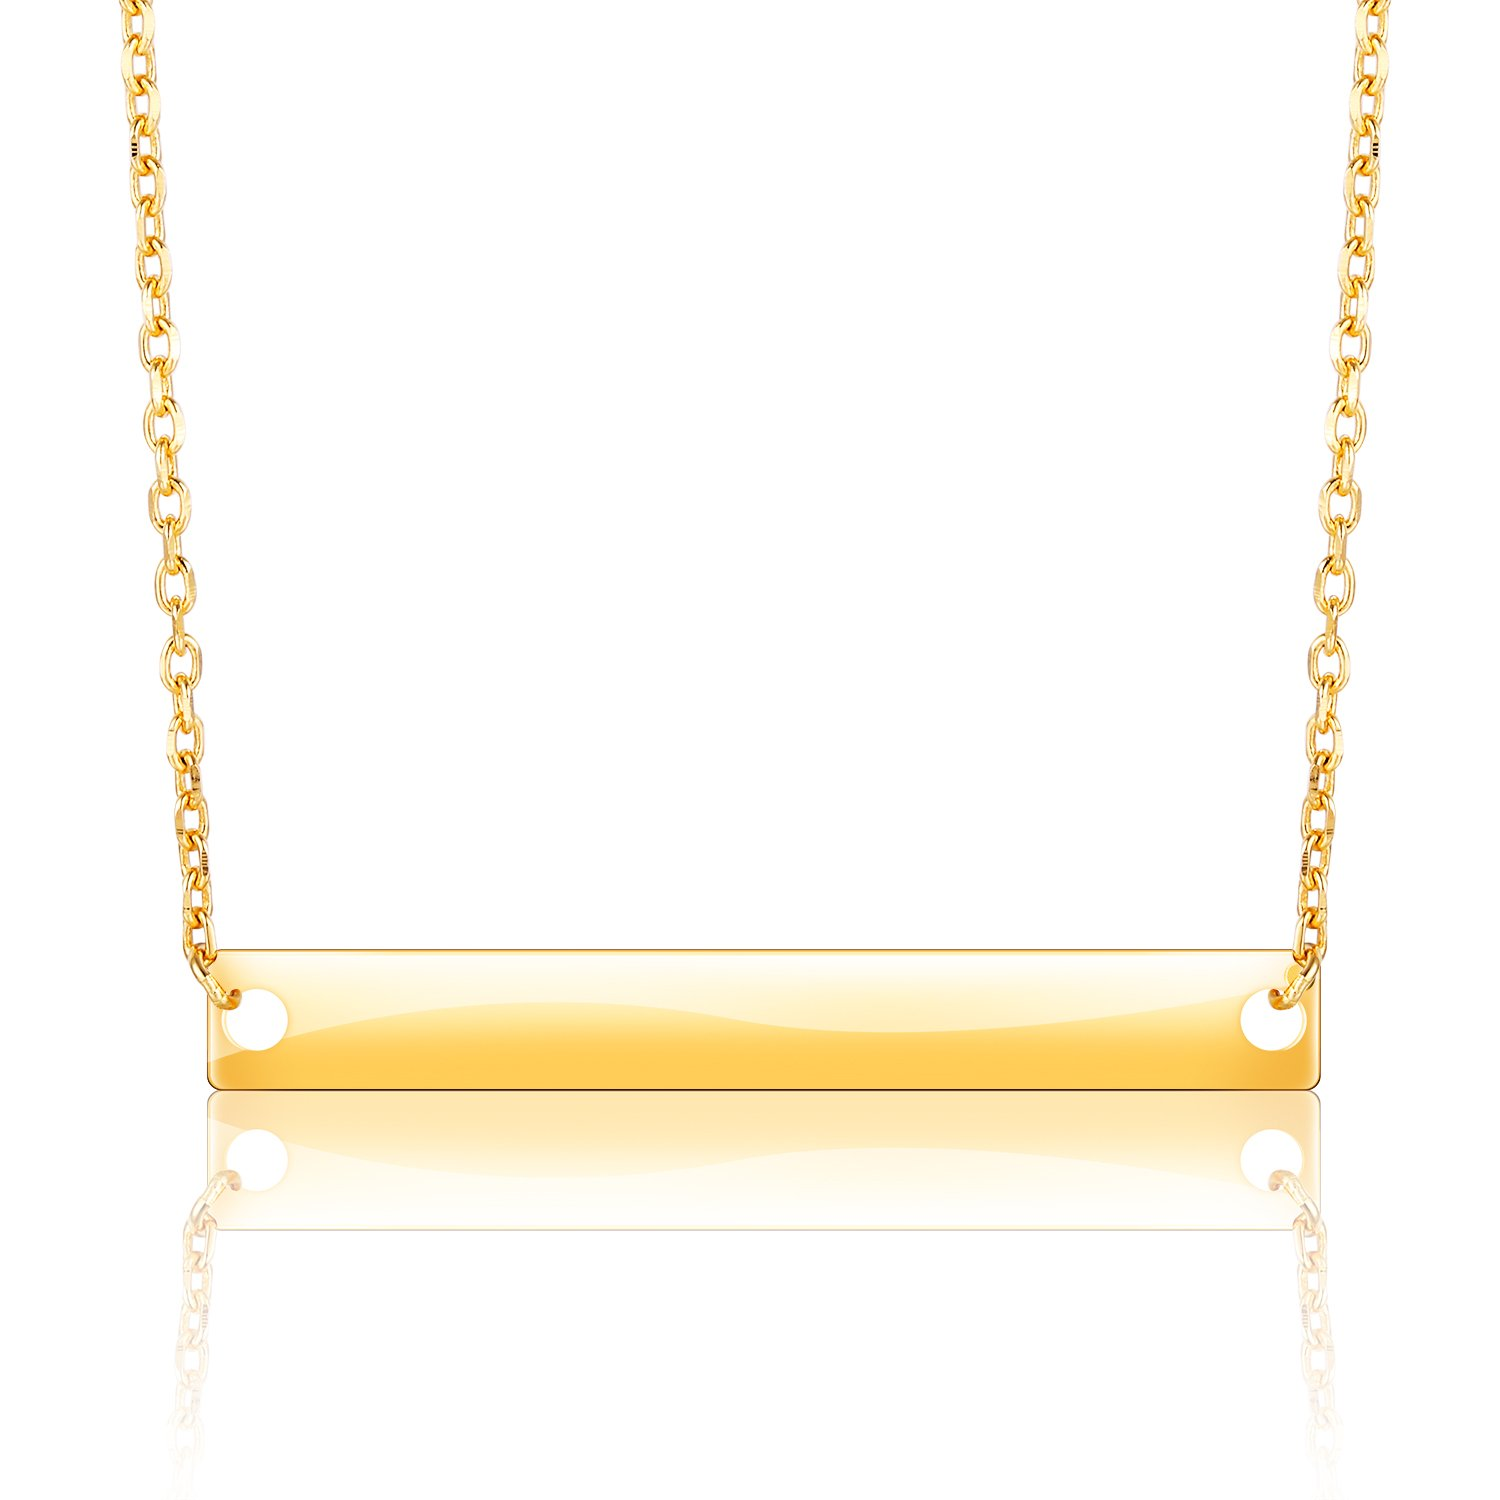 LIEBLICH S925 Sterling Silver Bar Charm Pendant Necklace Christmas Gift for Women (Gold)